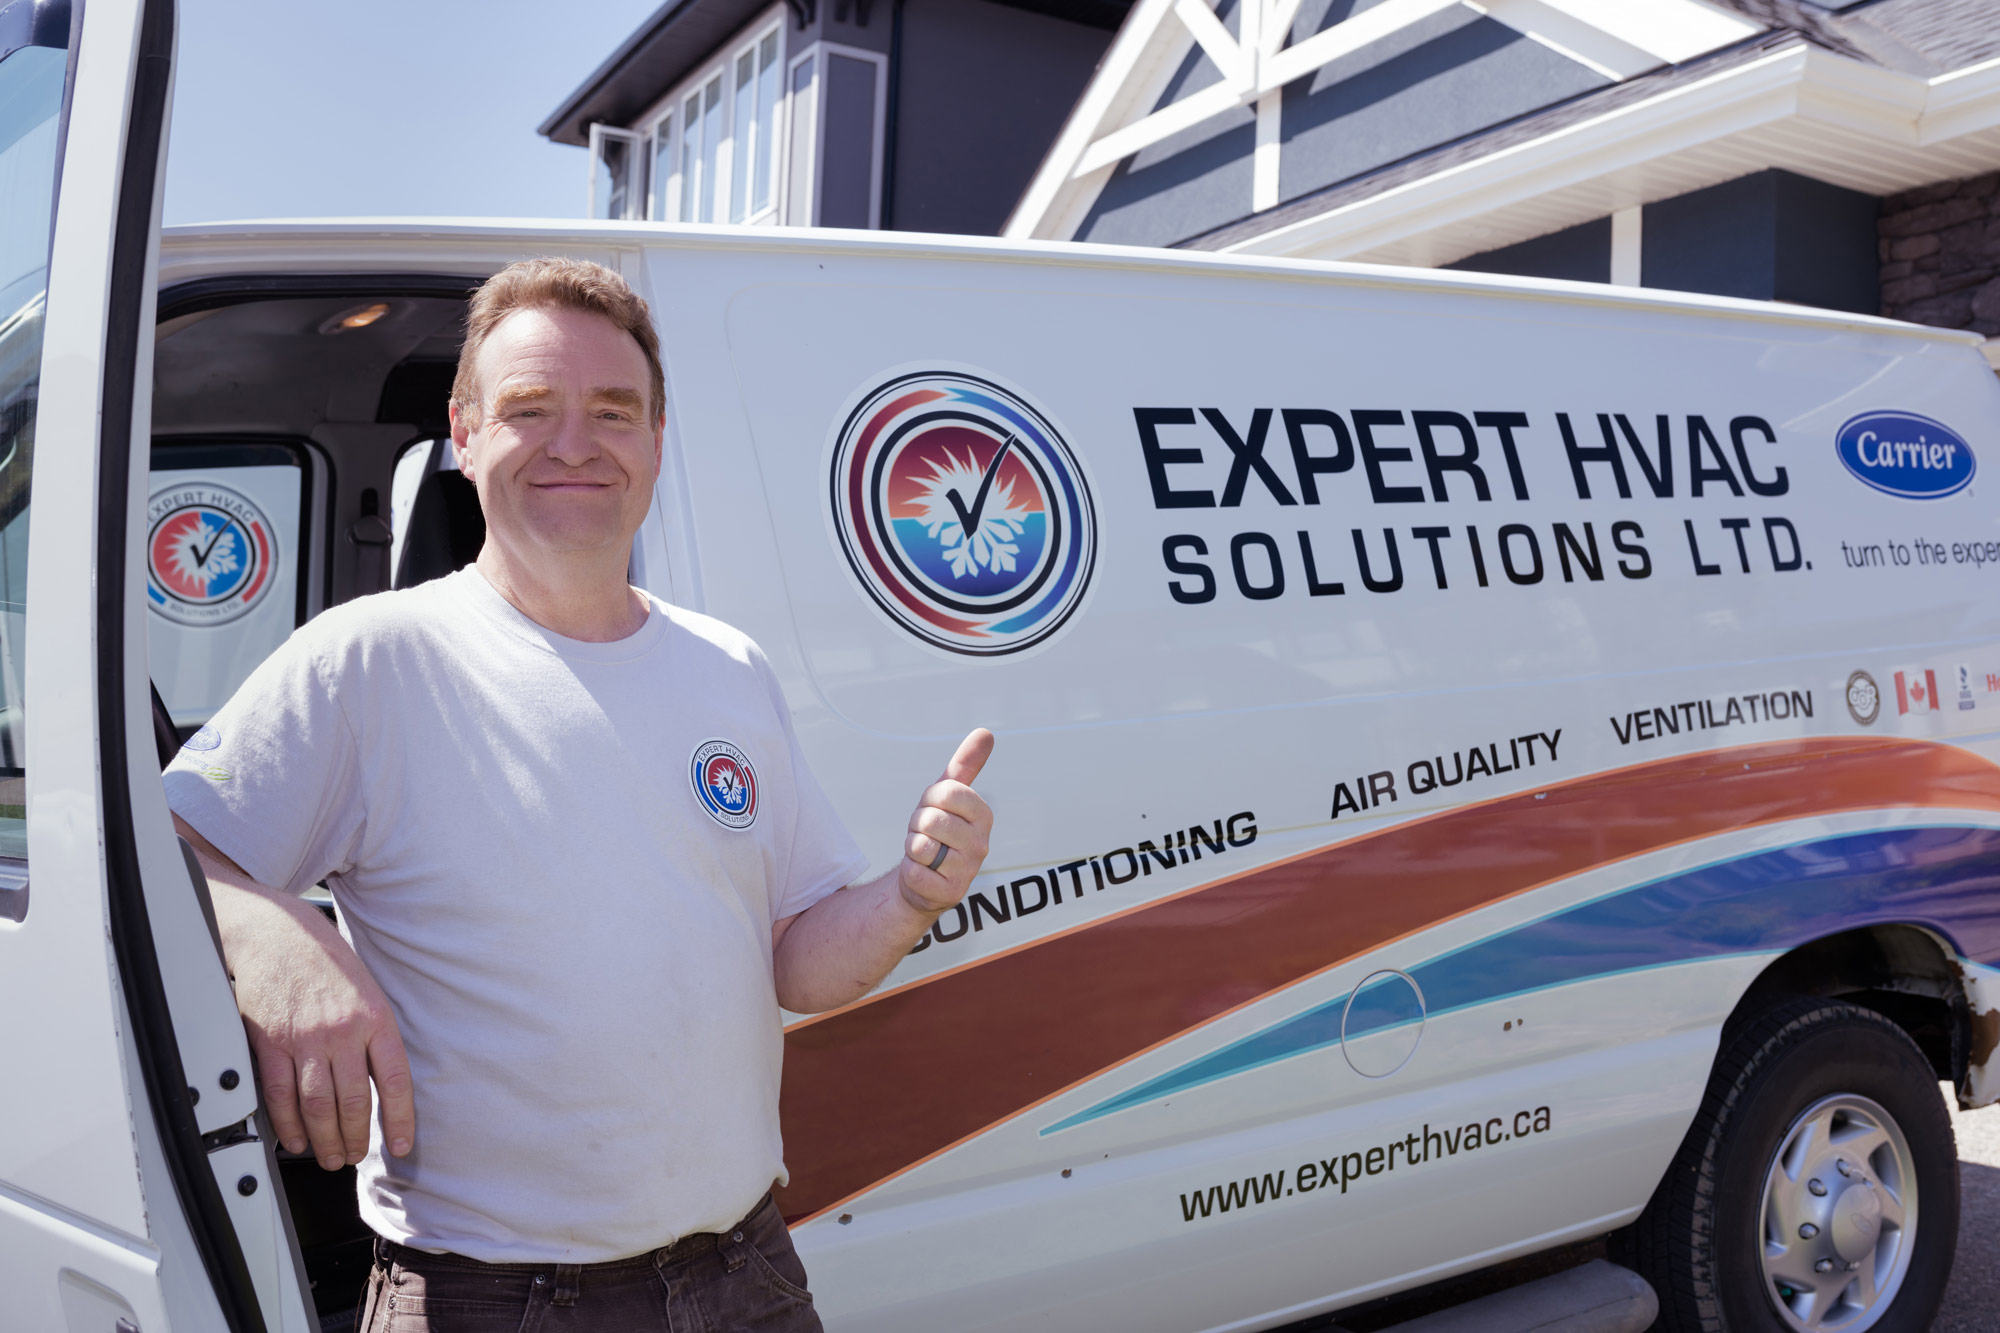 Expert Hvac Solutions, Carrrier Experts, furnace cleaning in Calgary, furnace with high AFUE rating, affordable furnace tuneup